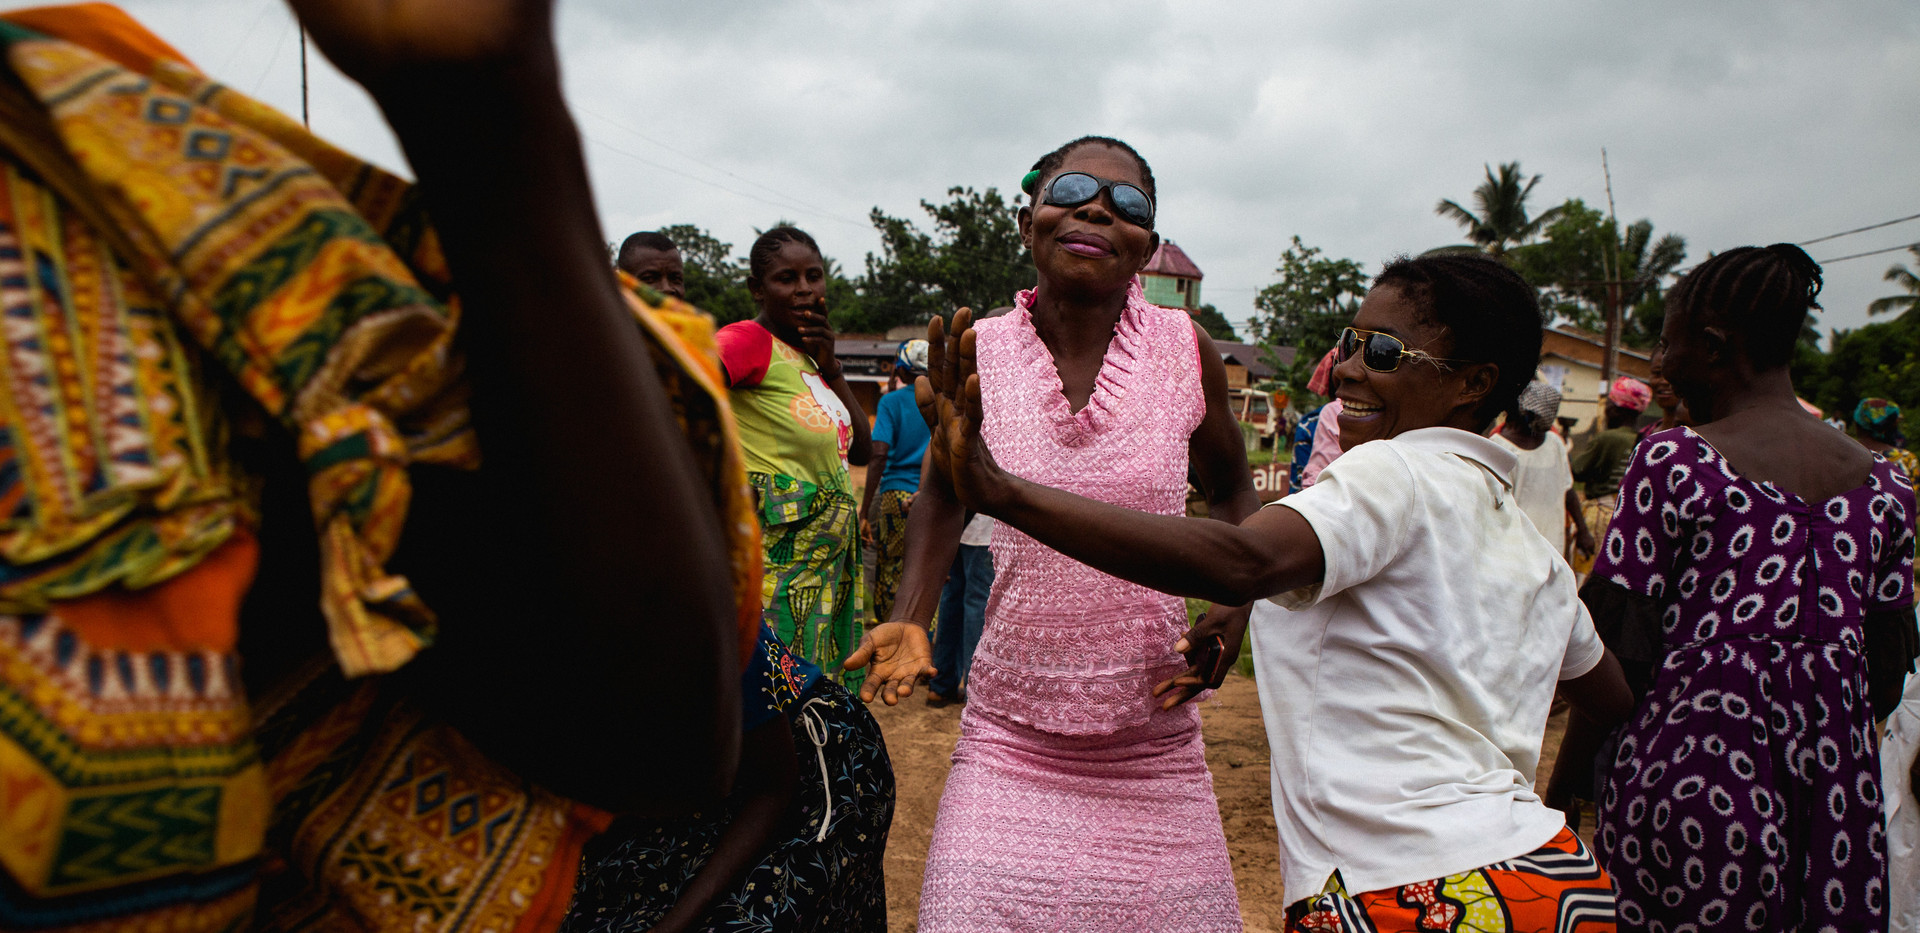 In Kananga, a procession celebrates a burial. In DRC this is synonymous with celebration.